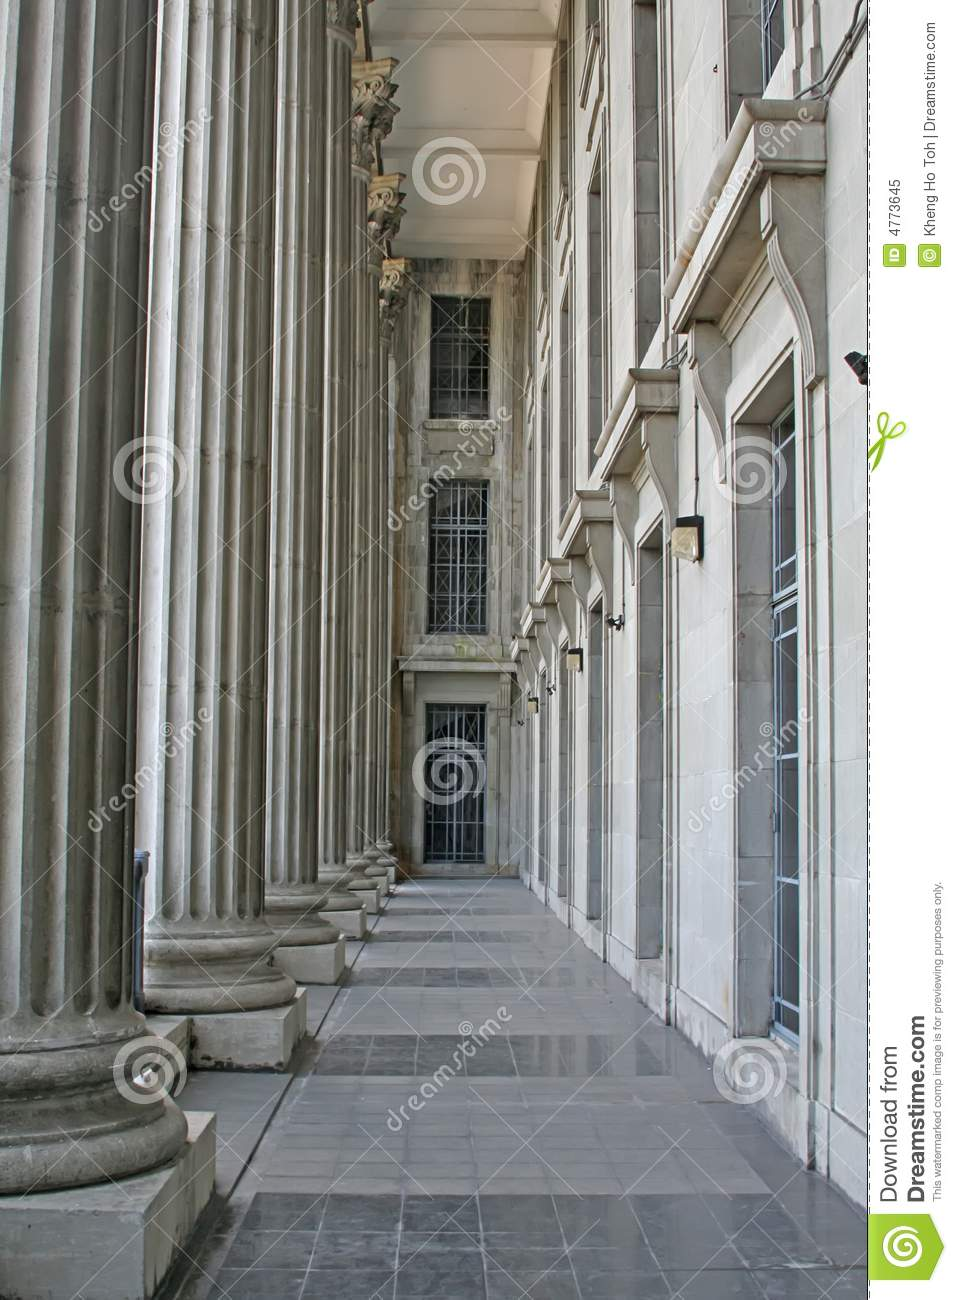 Construcion Stone Column : Law building stone columns royalty free stock photo